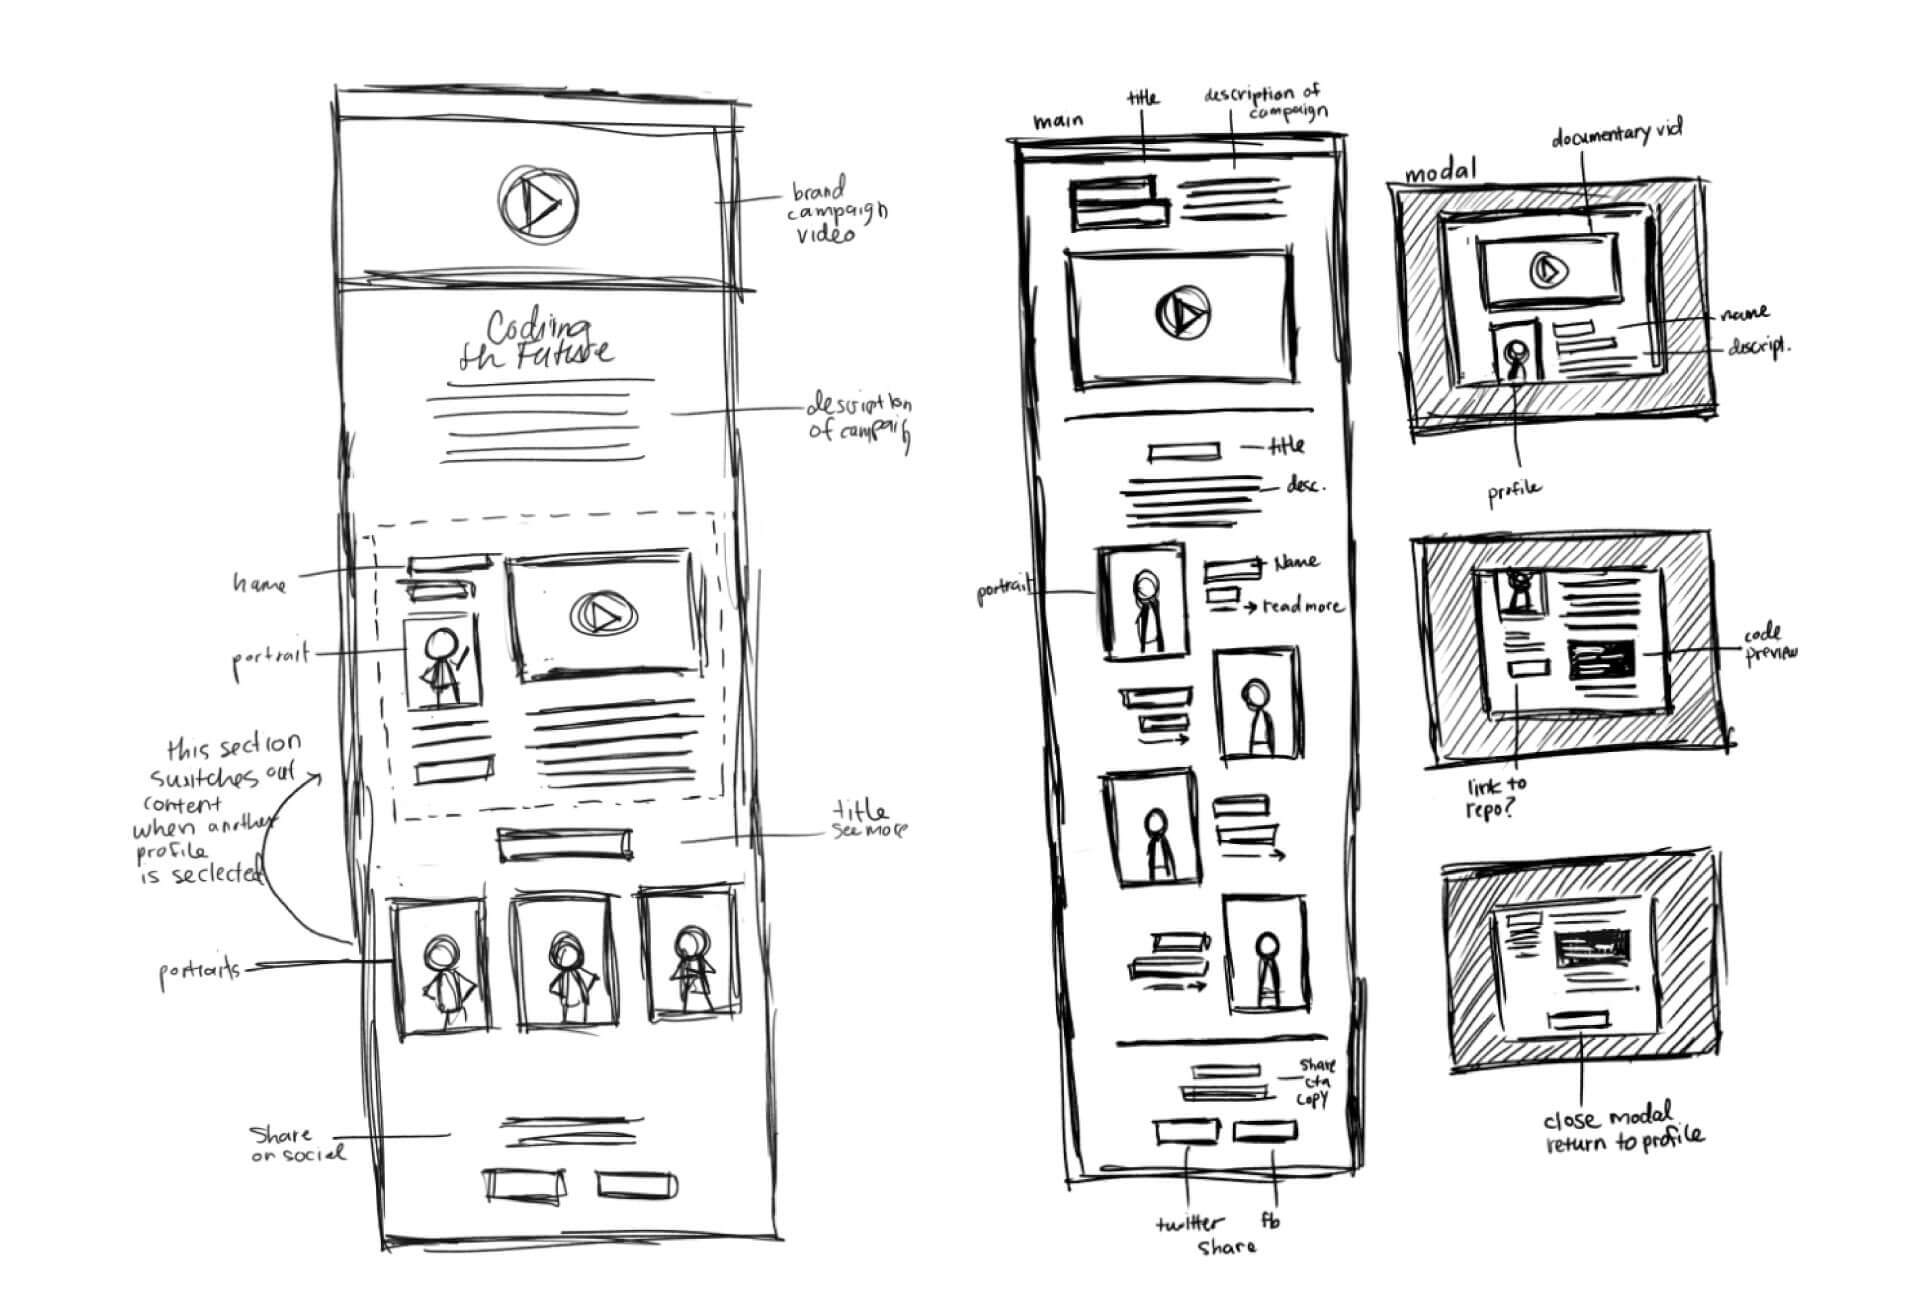 sketch of a wireframe